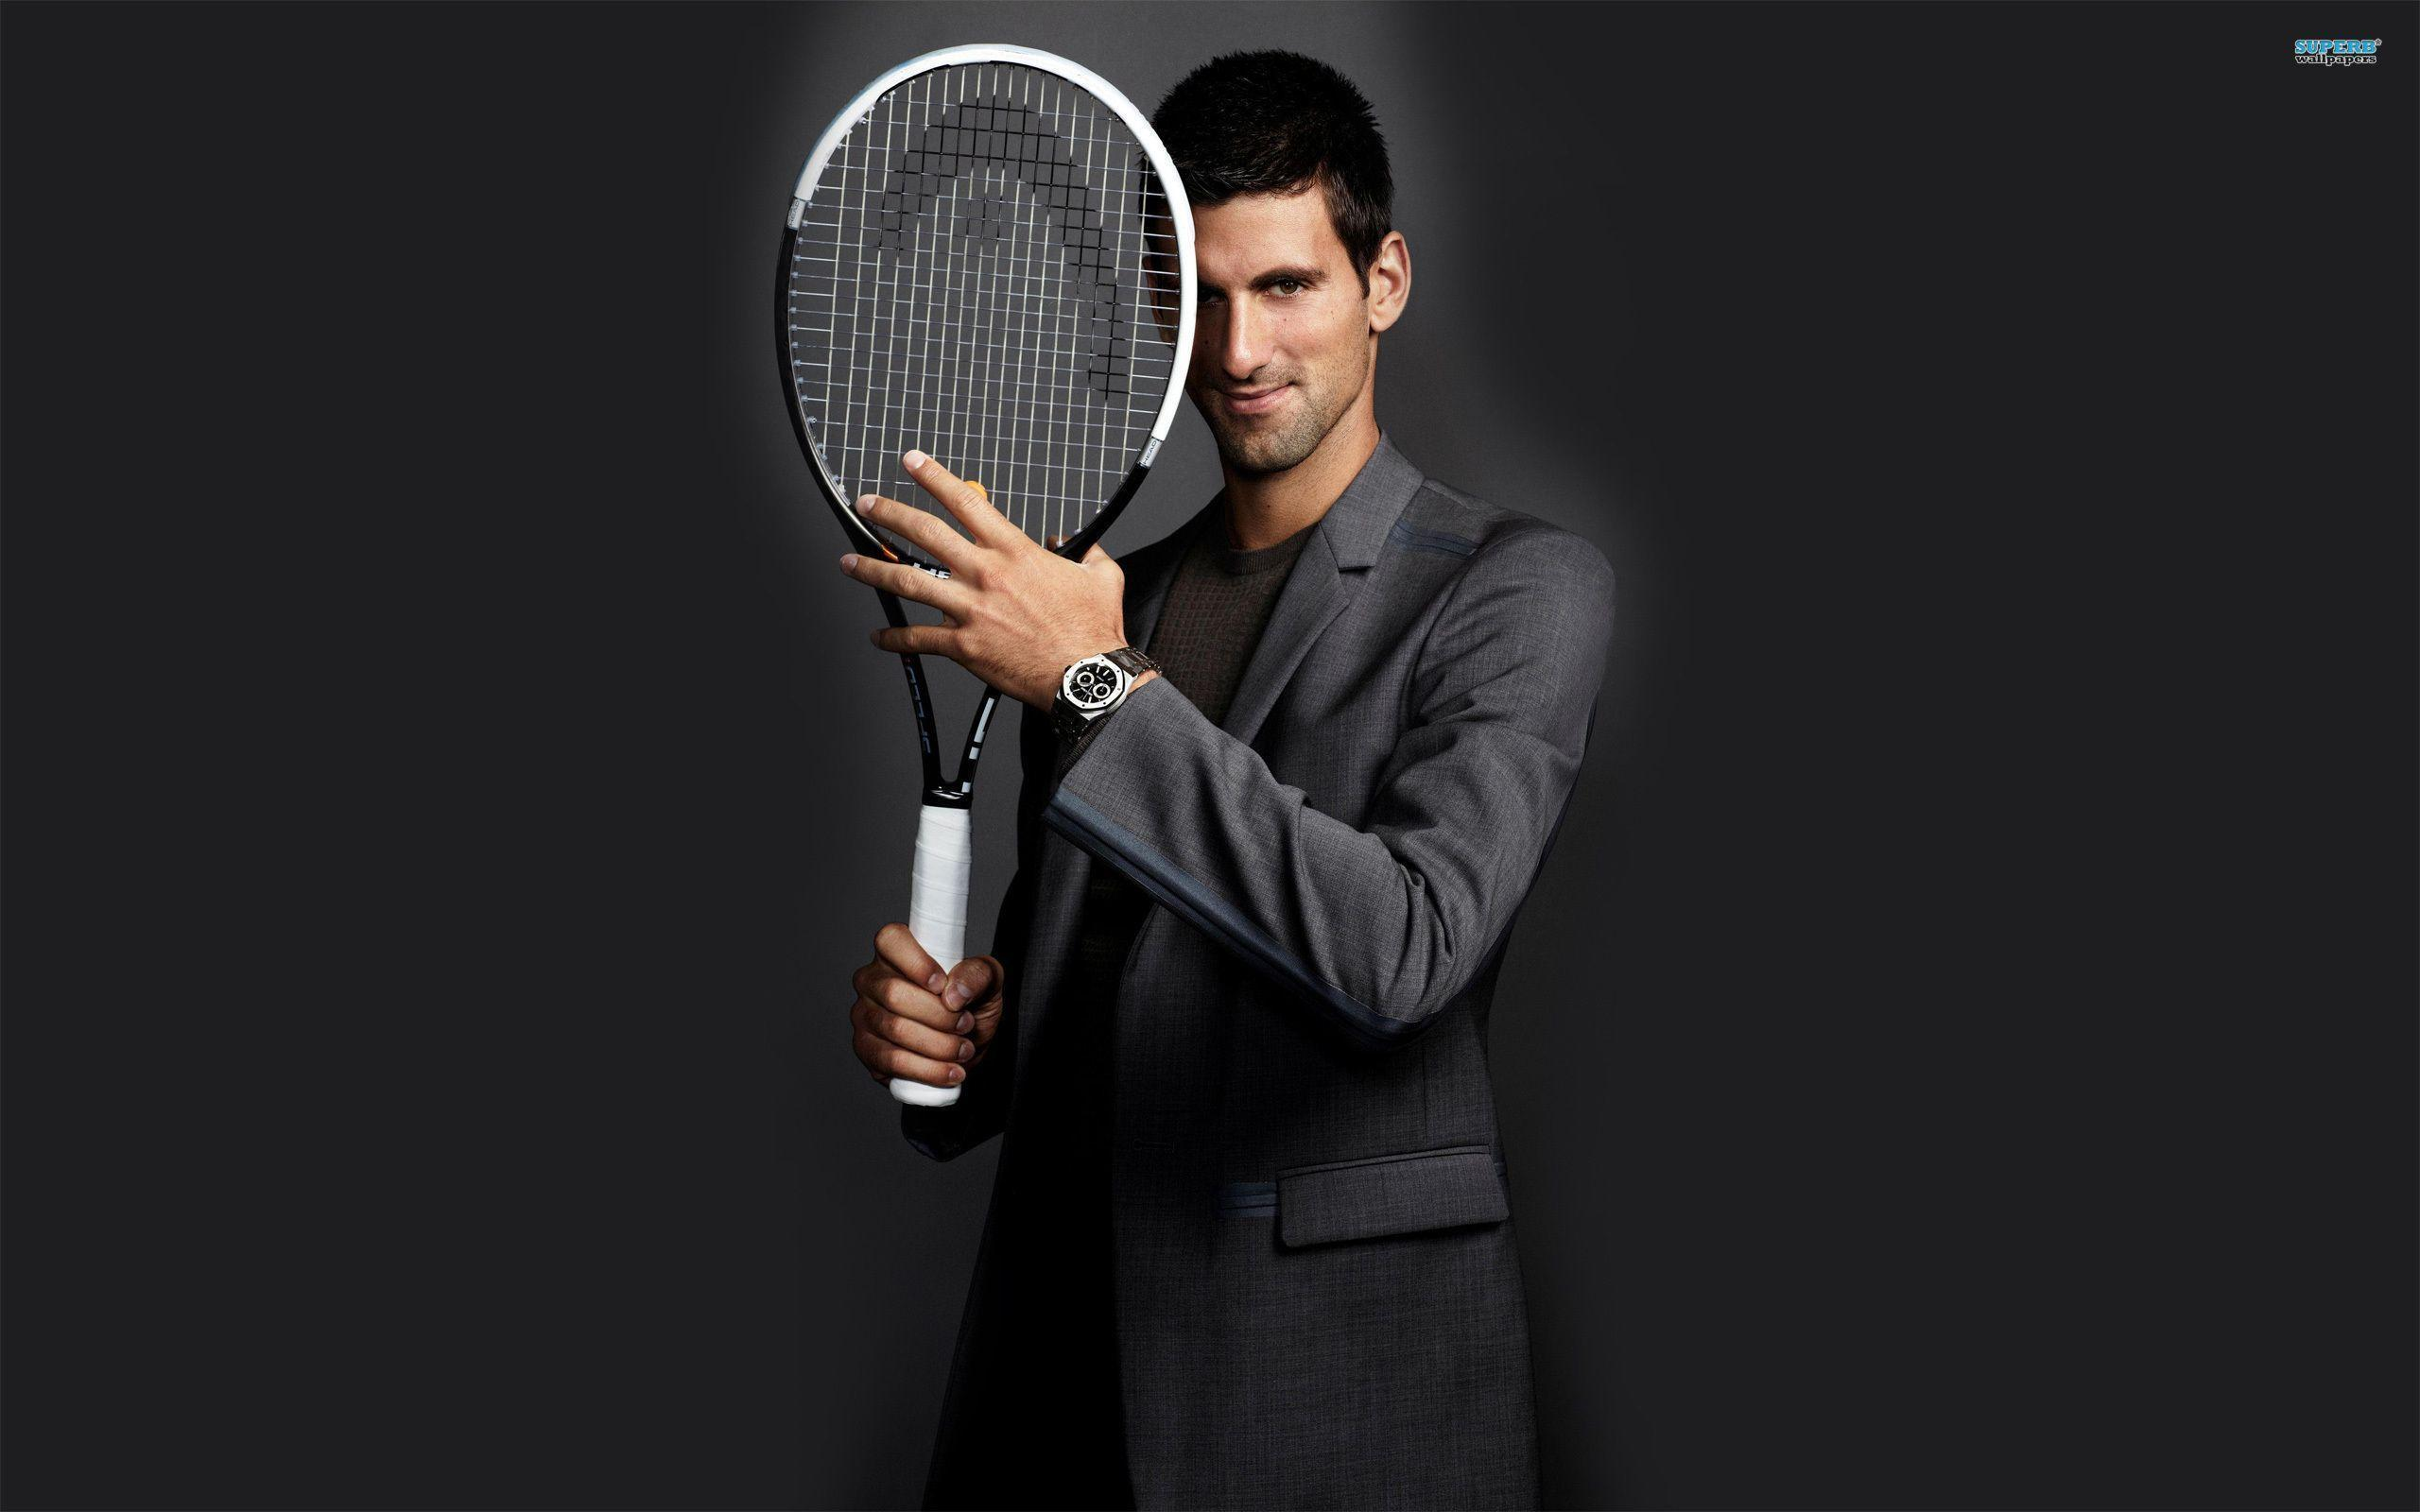 FunMozar – Novak Djokovic Wallpaper